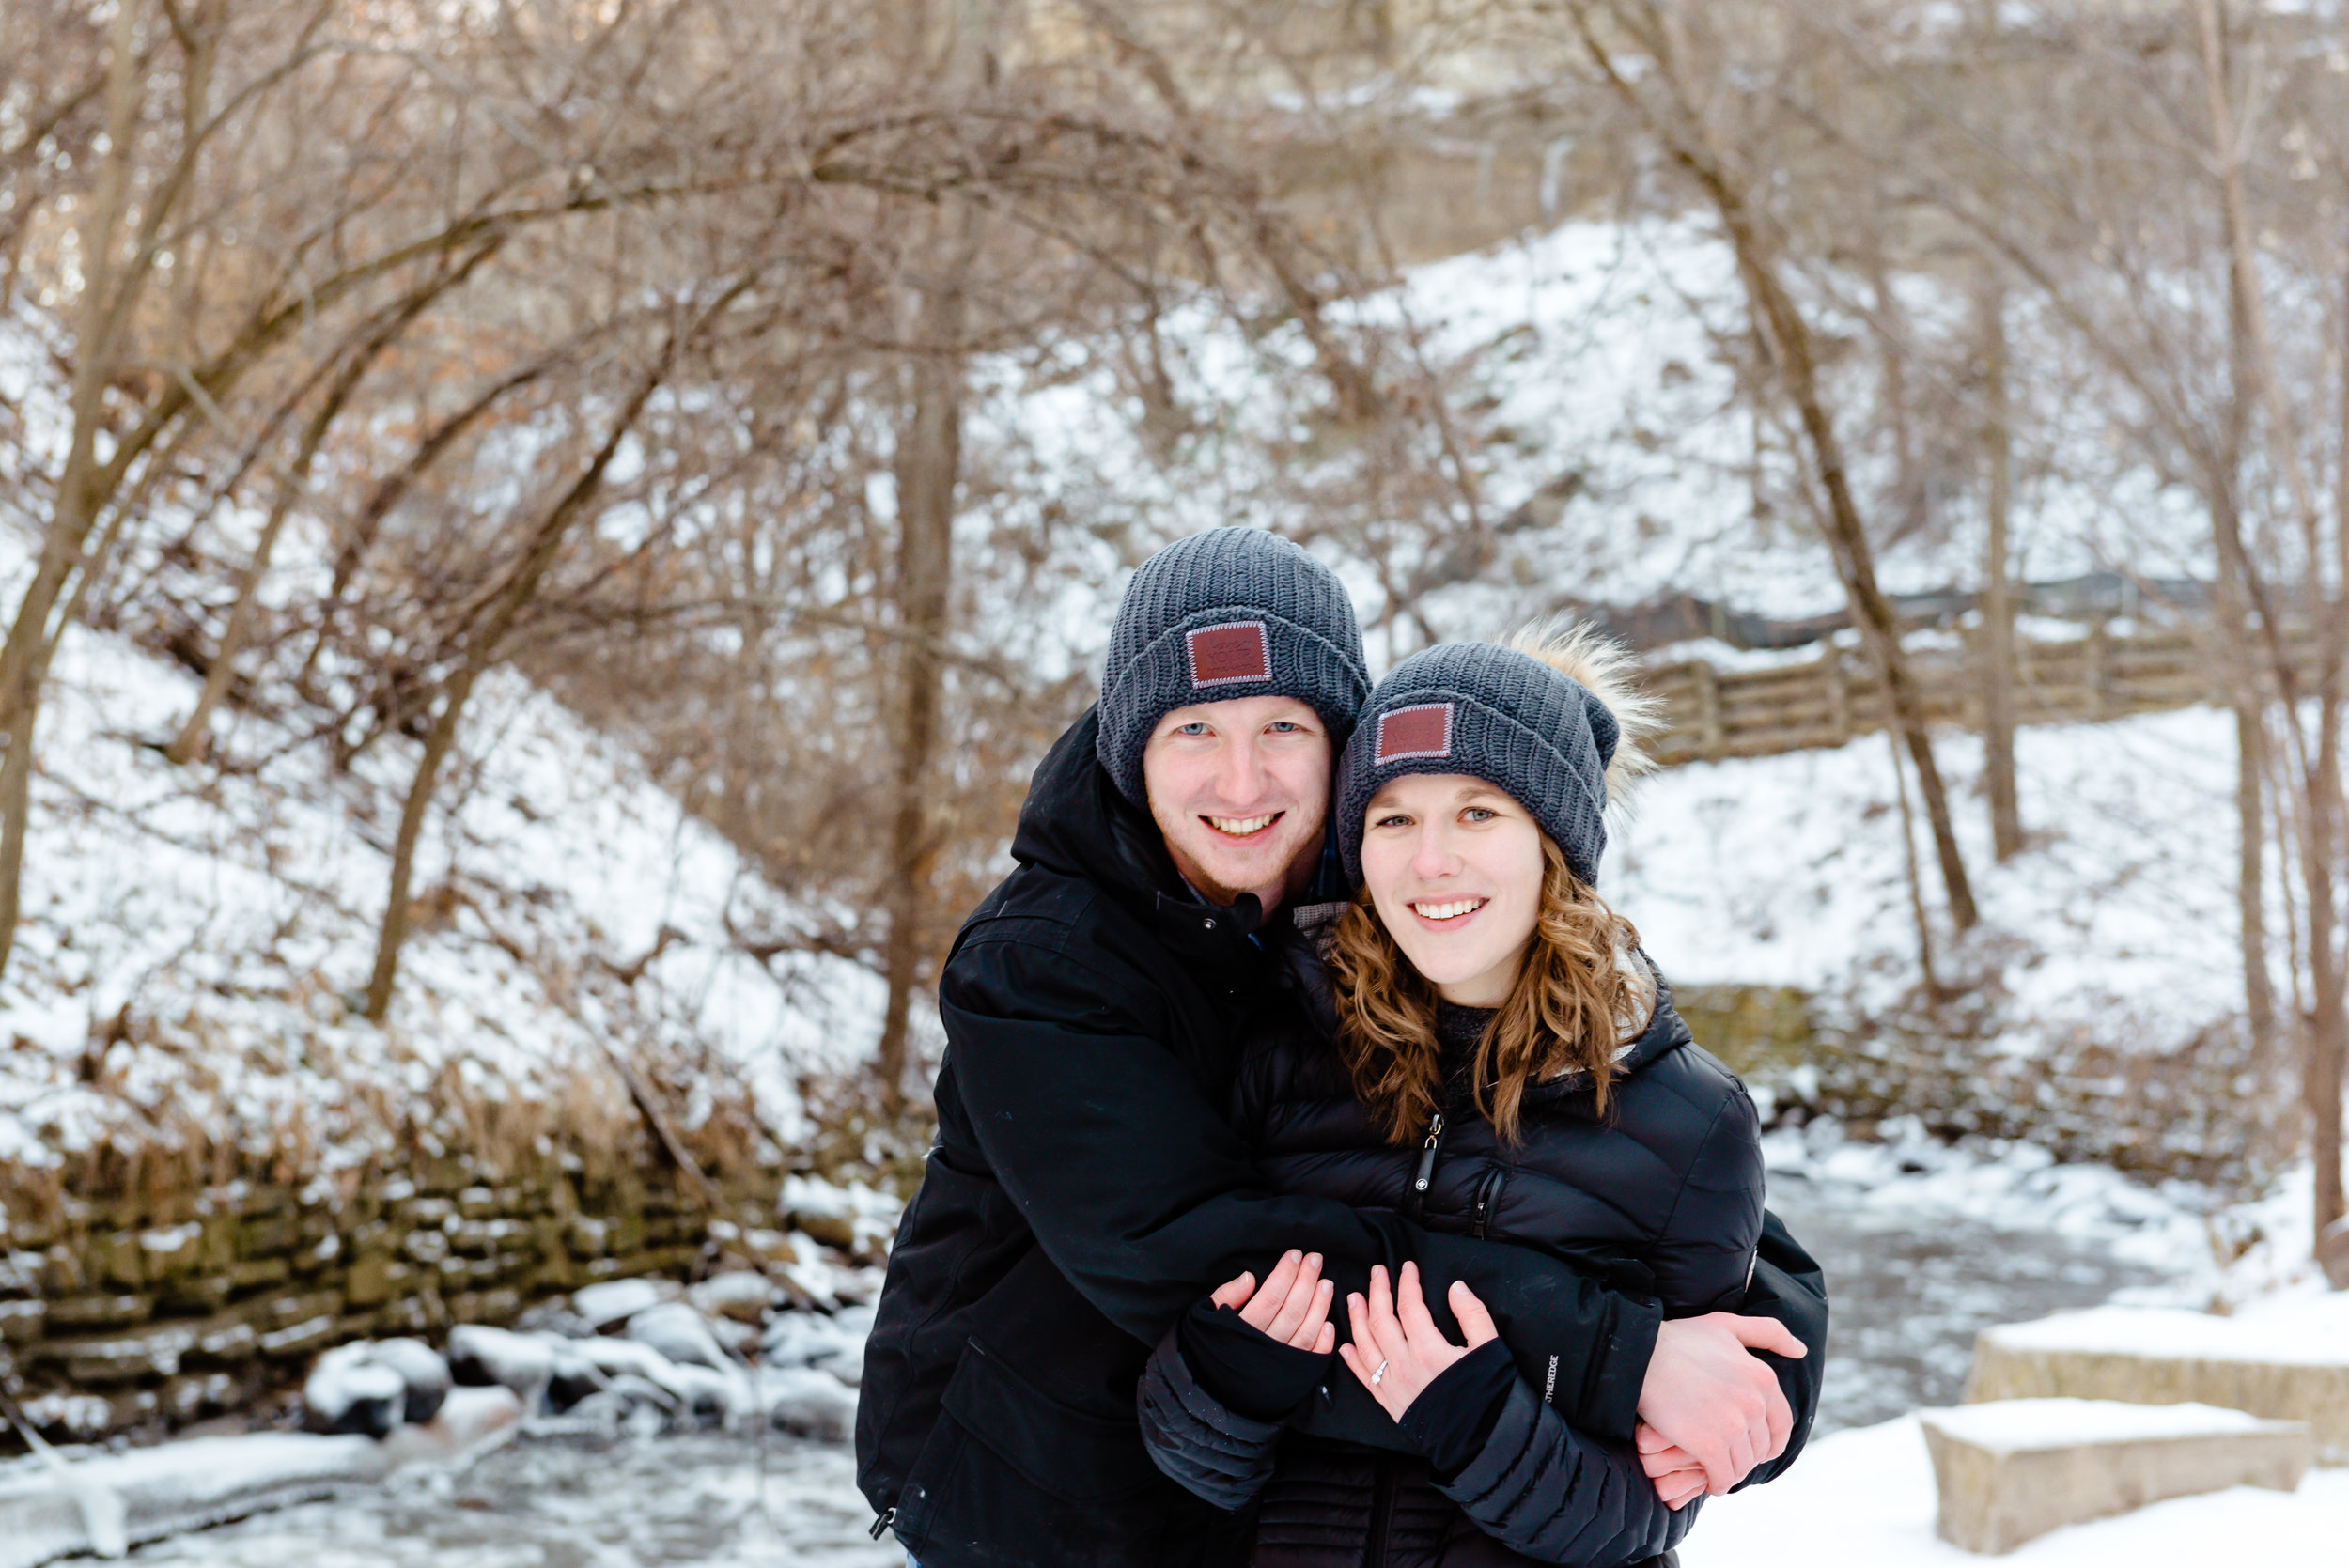 Minneapolis MN Engagement Photo Locations - Minnehaha Falls in Winter with Snow